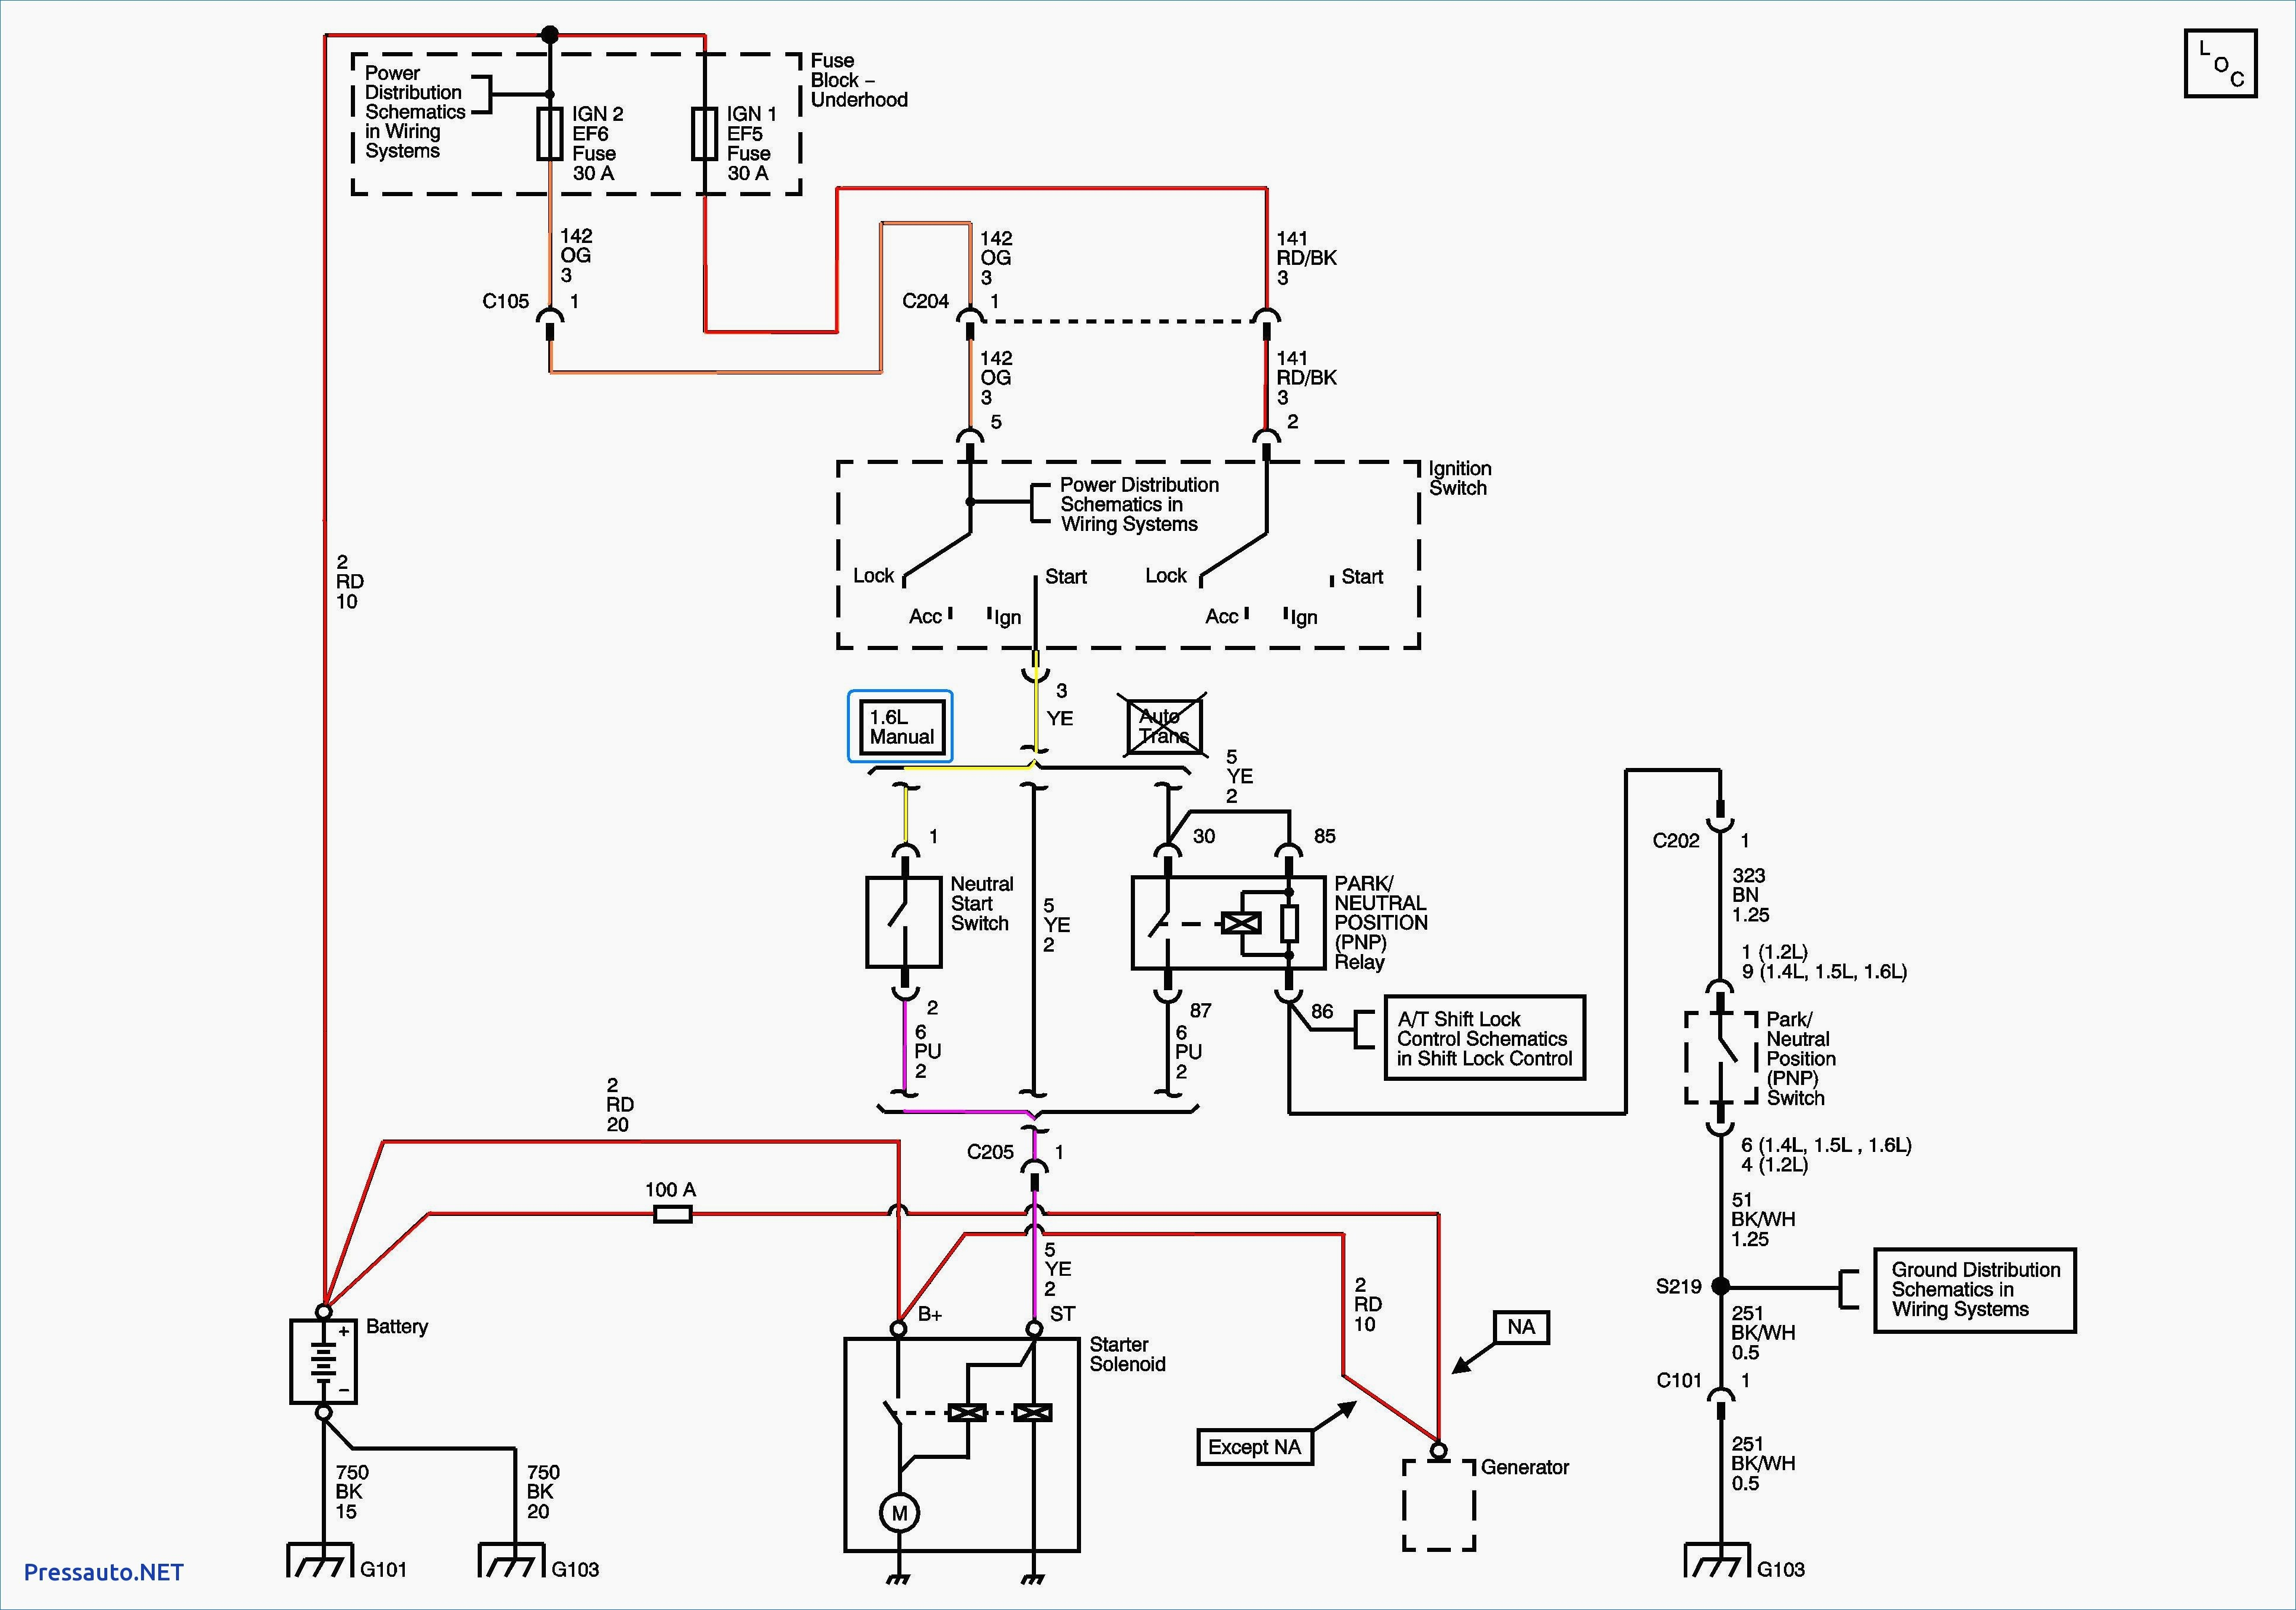 siemens micromaster 440 control wiring diagram Download-wiring diagram also ignition starter switch wiring diagram moreover rh qualiwood co 6-a